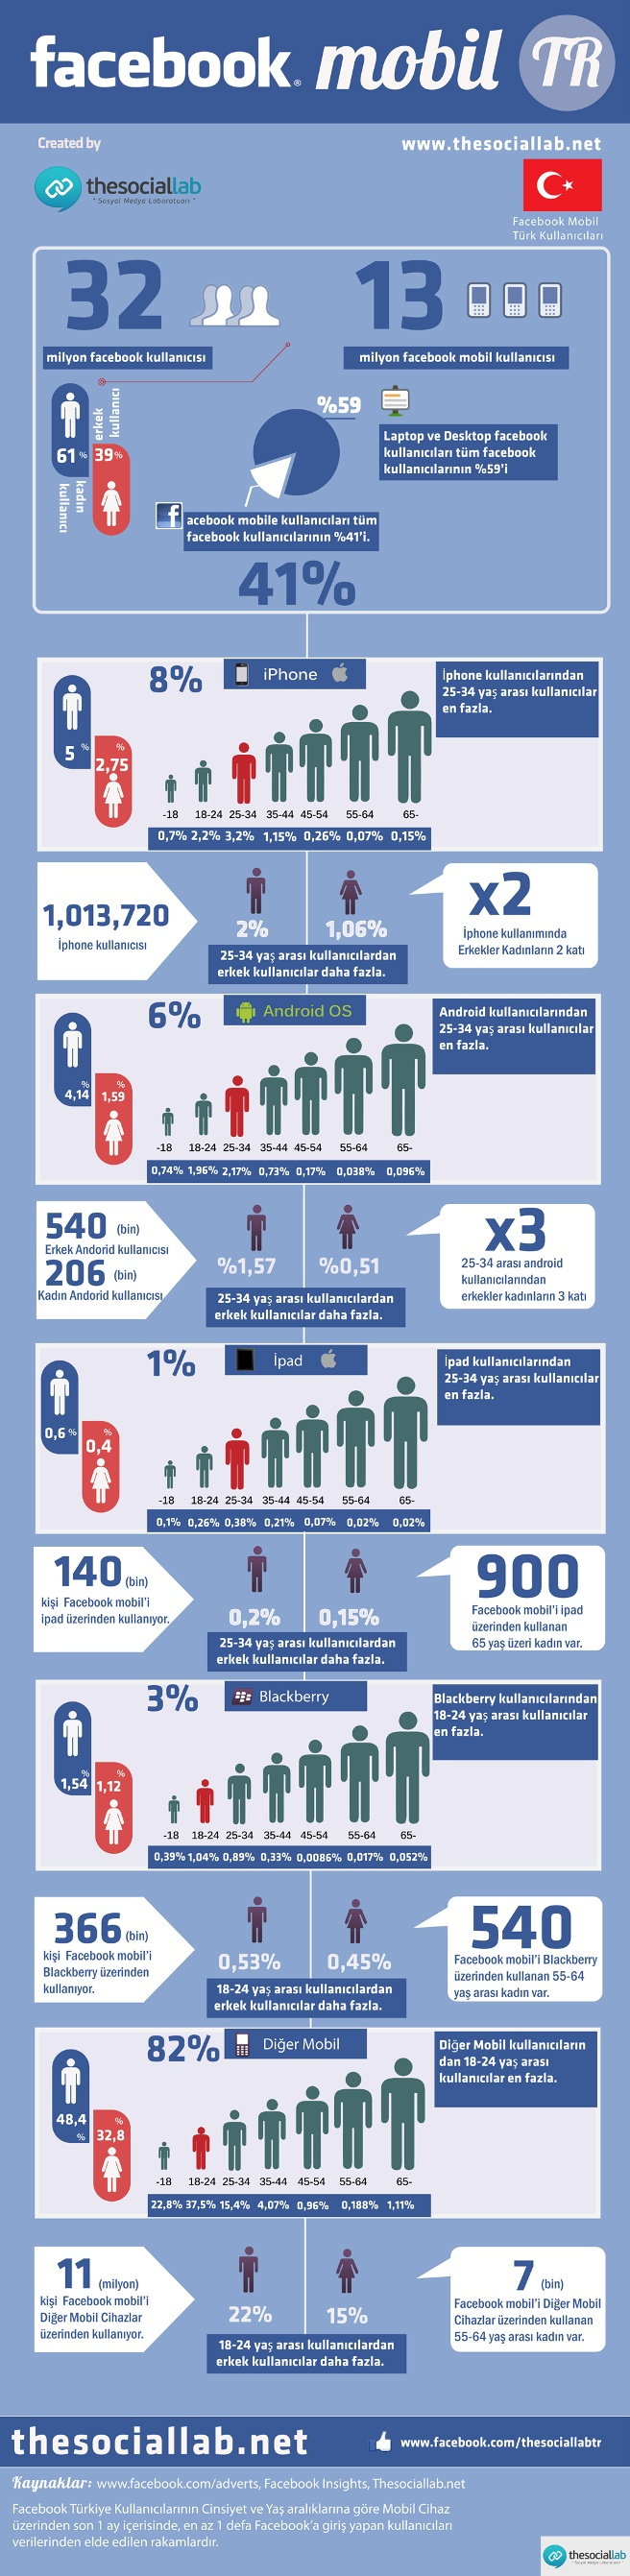 Infographic on FB mobile users - TR